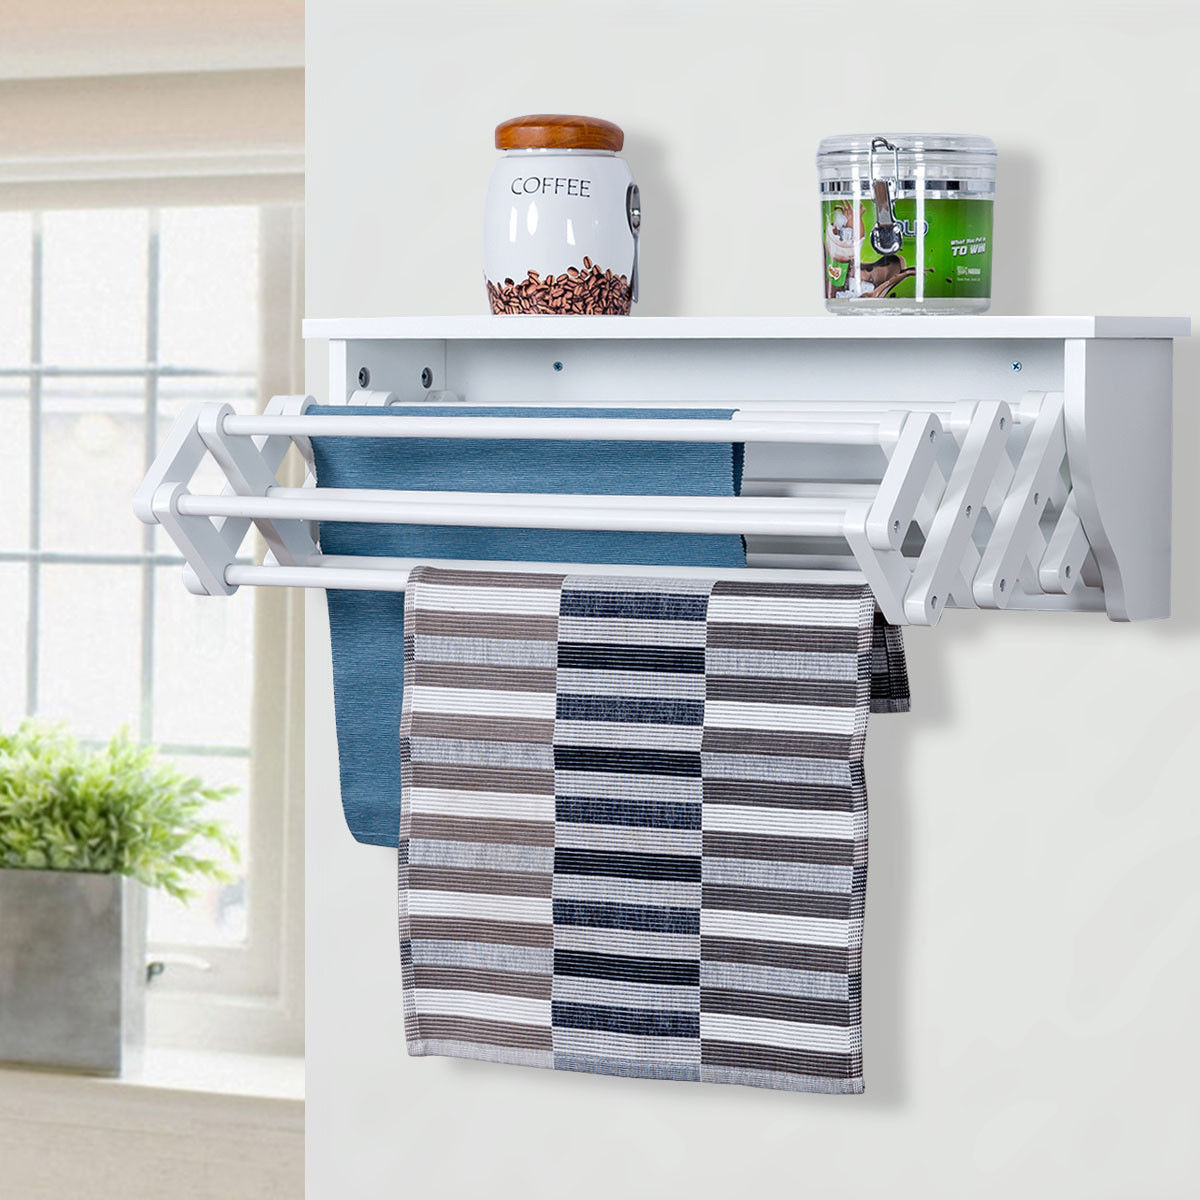 Costway Wall Mounted Drying Rack Folding Clothes Towel Laundry Room